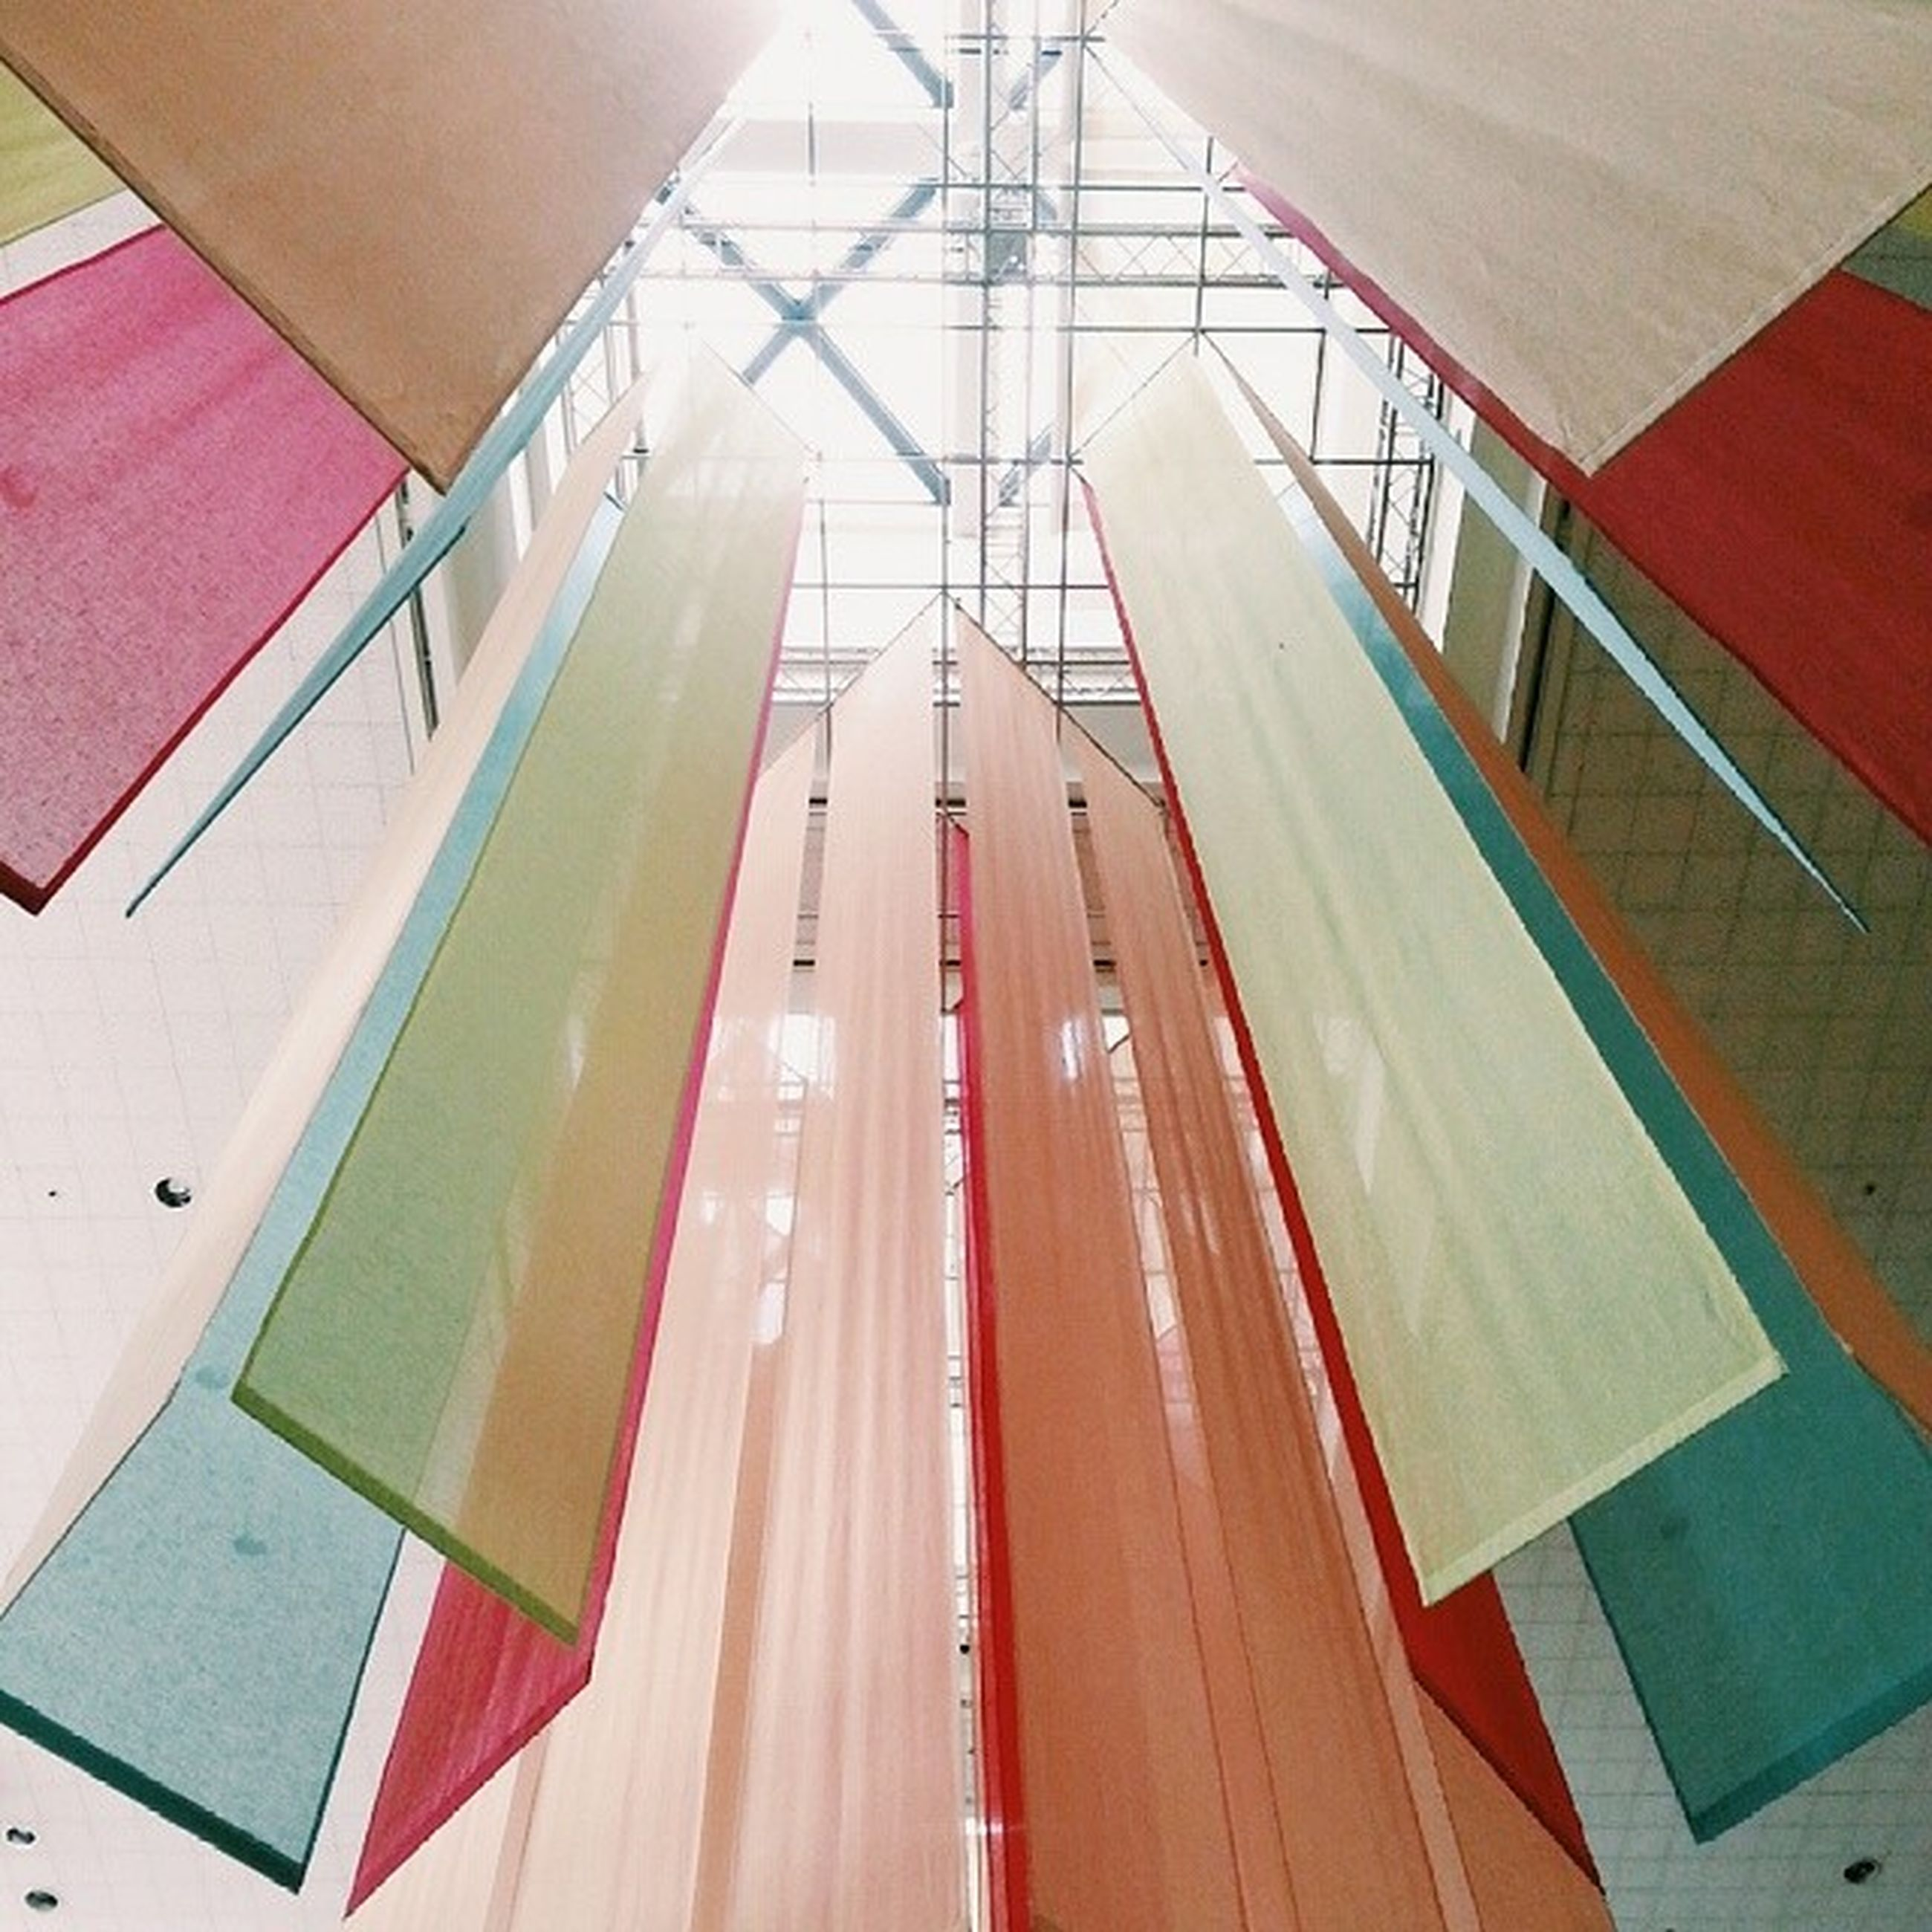 indoors, empty, red, absence, high angle view, no people, pattern, built structure, in a row, multi colored, architecture, diminishing perspective, modern, ceiling, close-up, day, steps, railing, table, seat